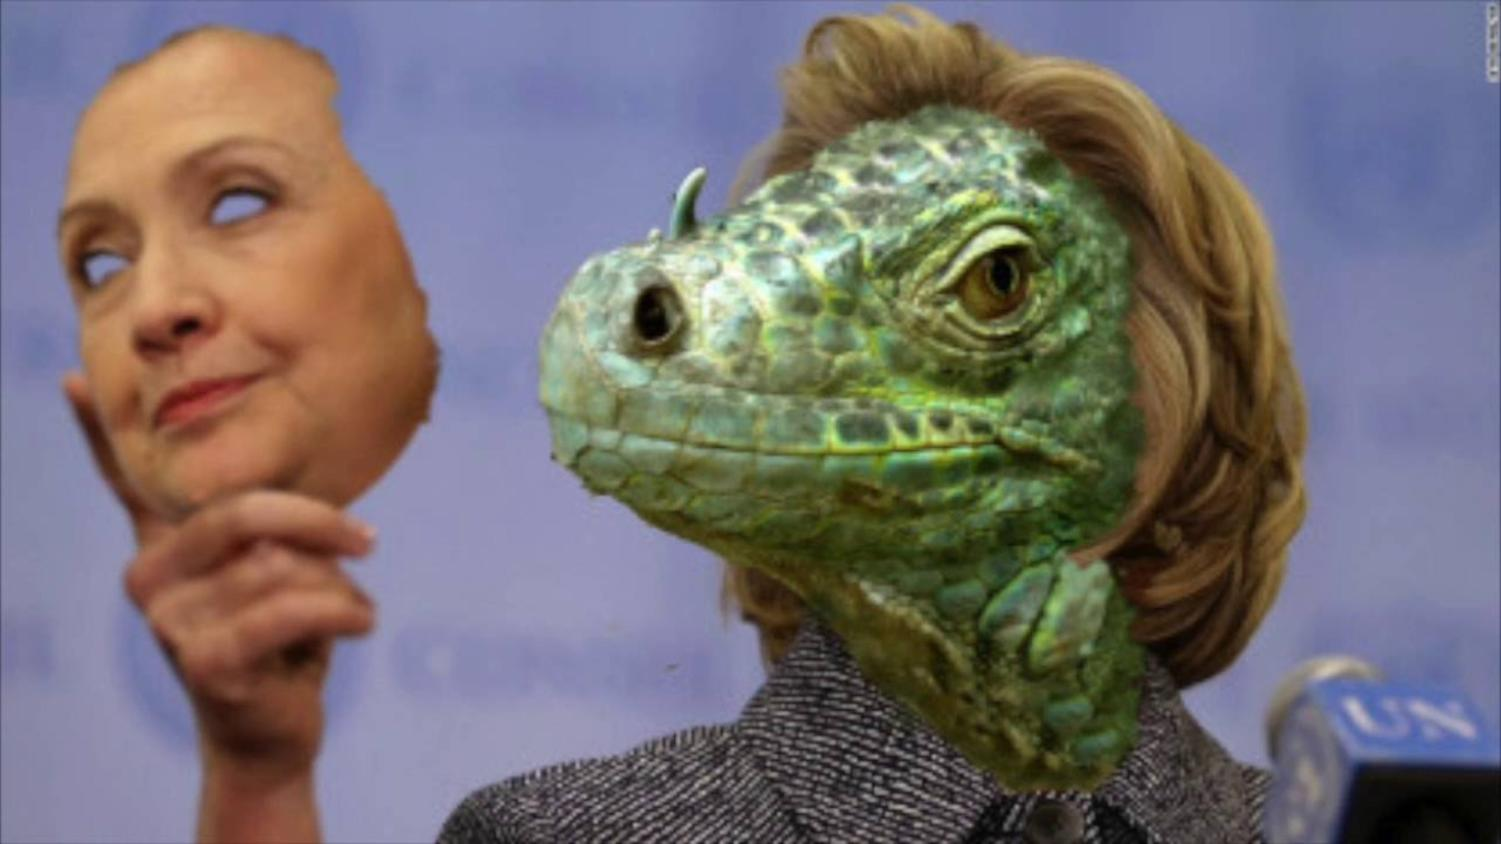 How to recognize a reptilian humanoid